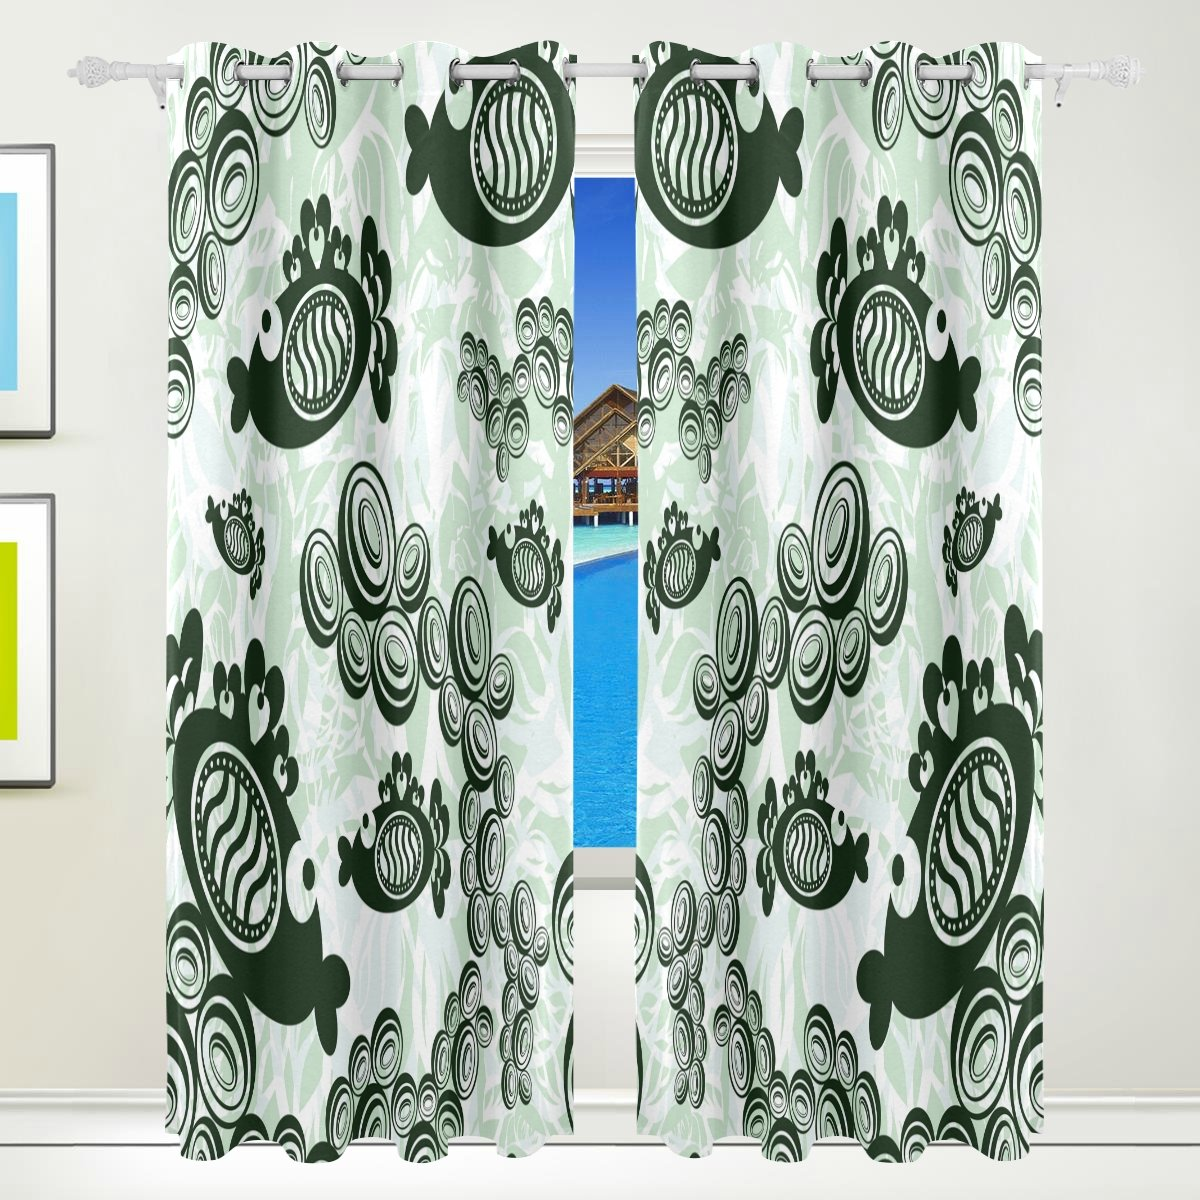 Vantaso Light Shading Window Curtains Abstract Black Fishes Spit Bubbles Polyester 2 Pannels for Kids Girls Boys Bedroom Living Room 84 inch x 55 inch